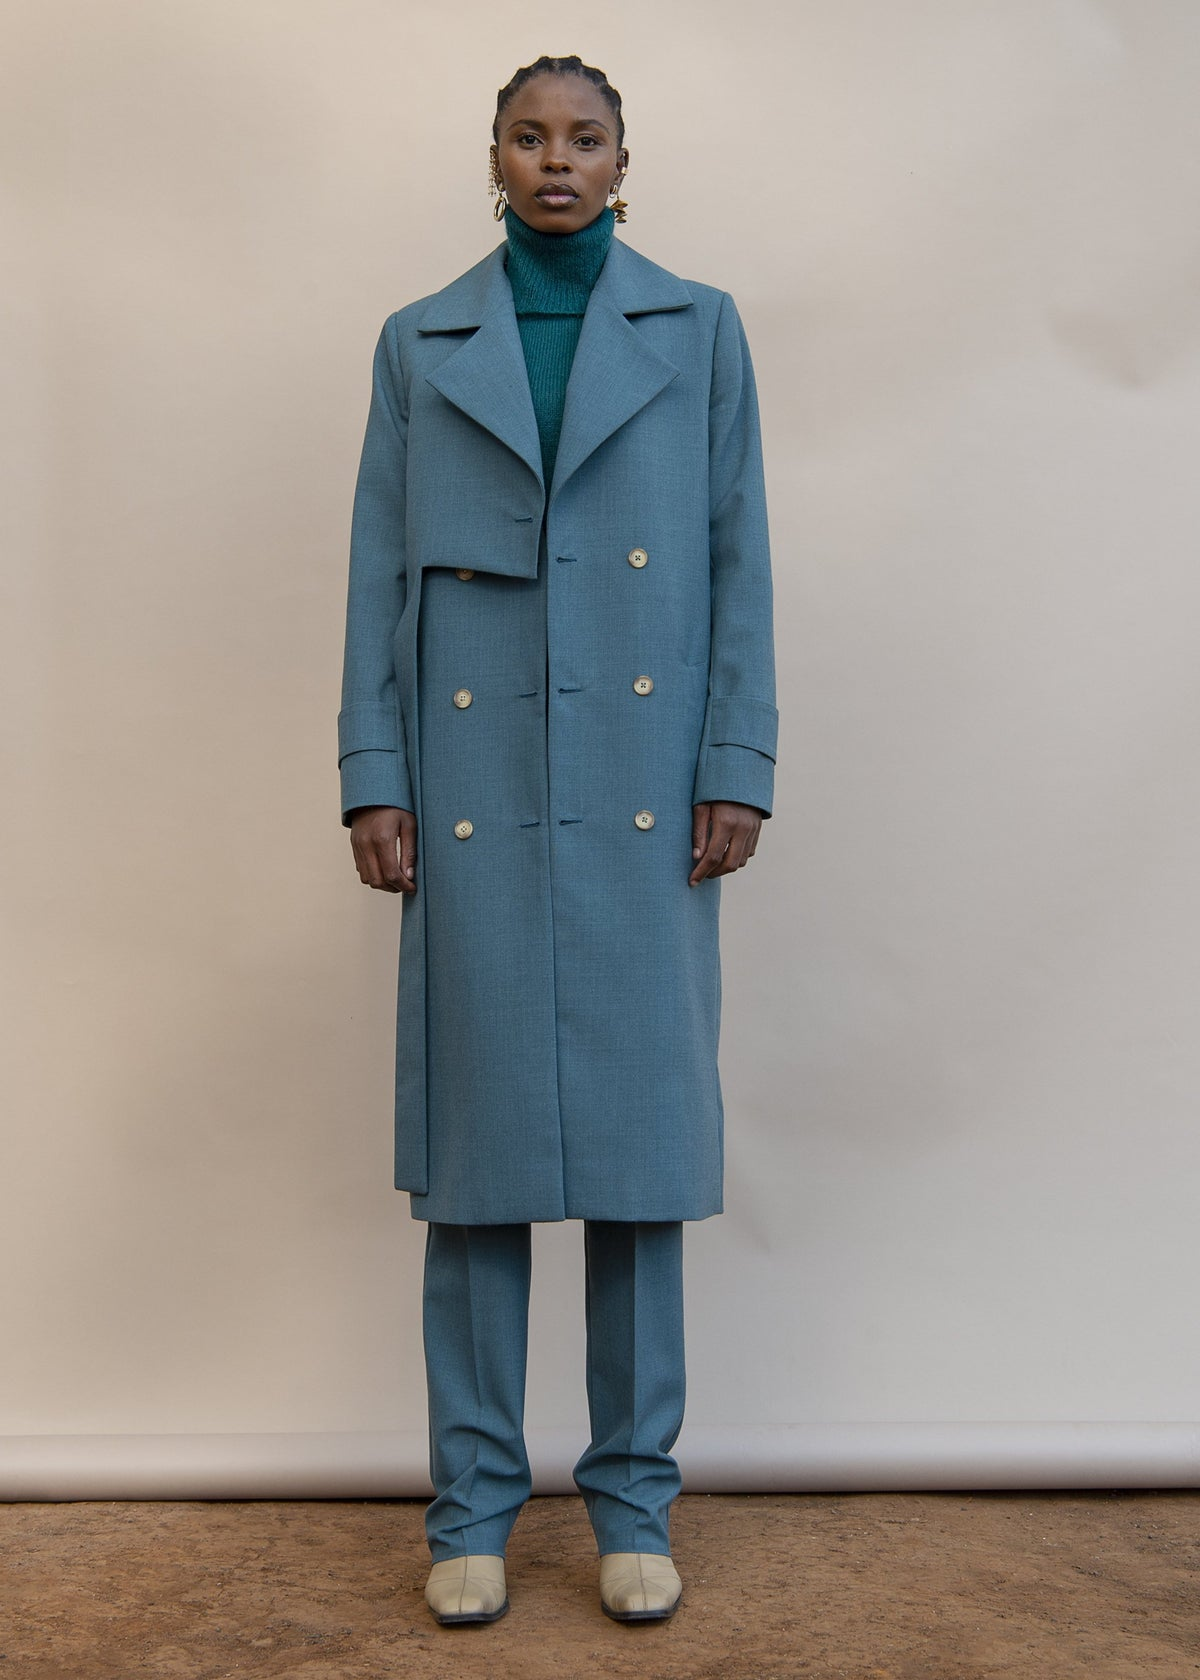 MmusoMaxwell cadet blue wool layered trench coat